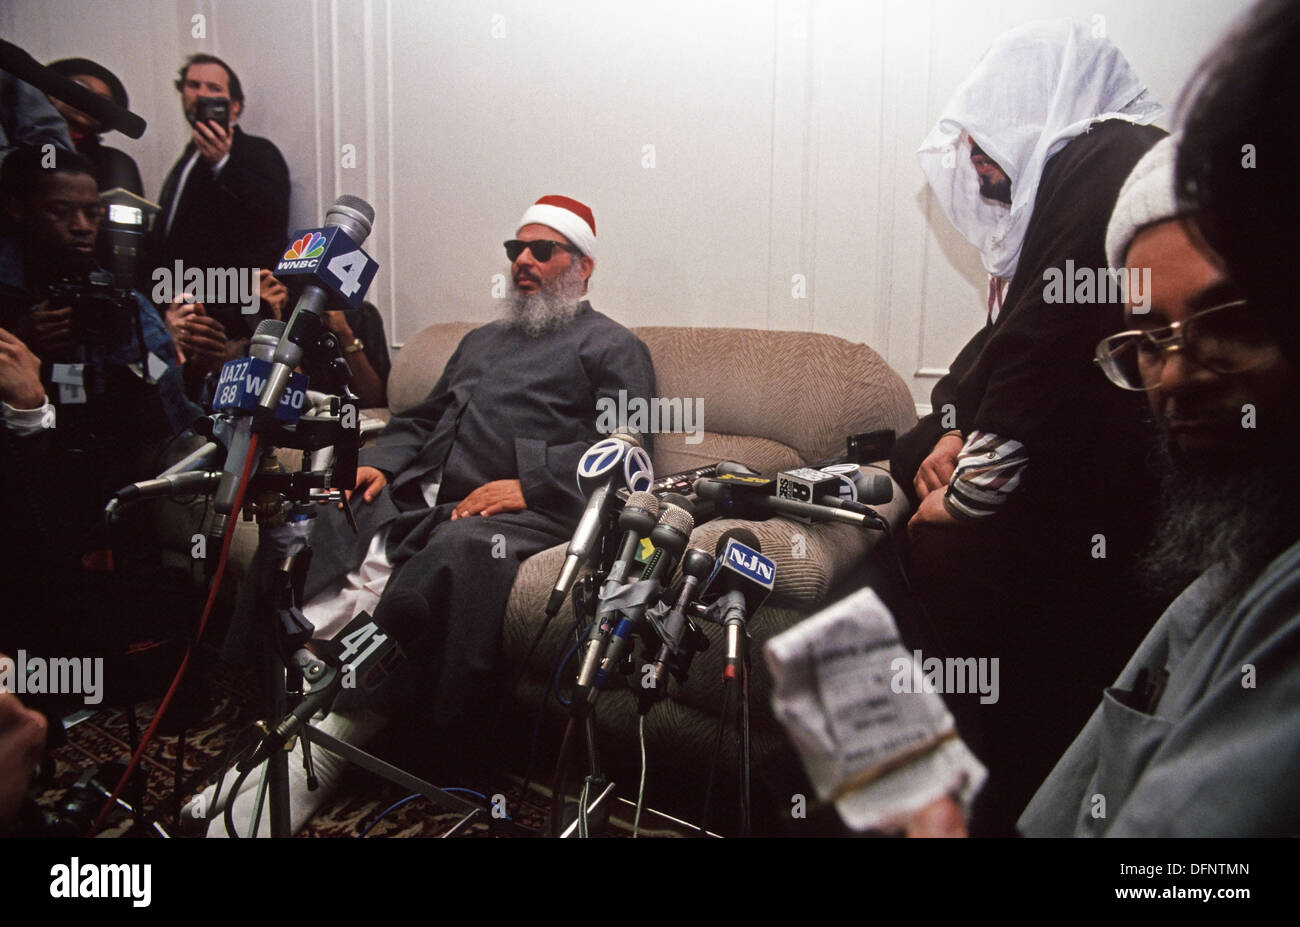 Jersey City, New Jersey - 6 April 1993 - Sheik Omar Abdel Rahman ( aka the Blind Sheik) at news conference in his Jersey City apartment ©Stacy Walsh Rosenstock. - Stock Image